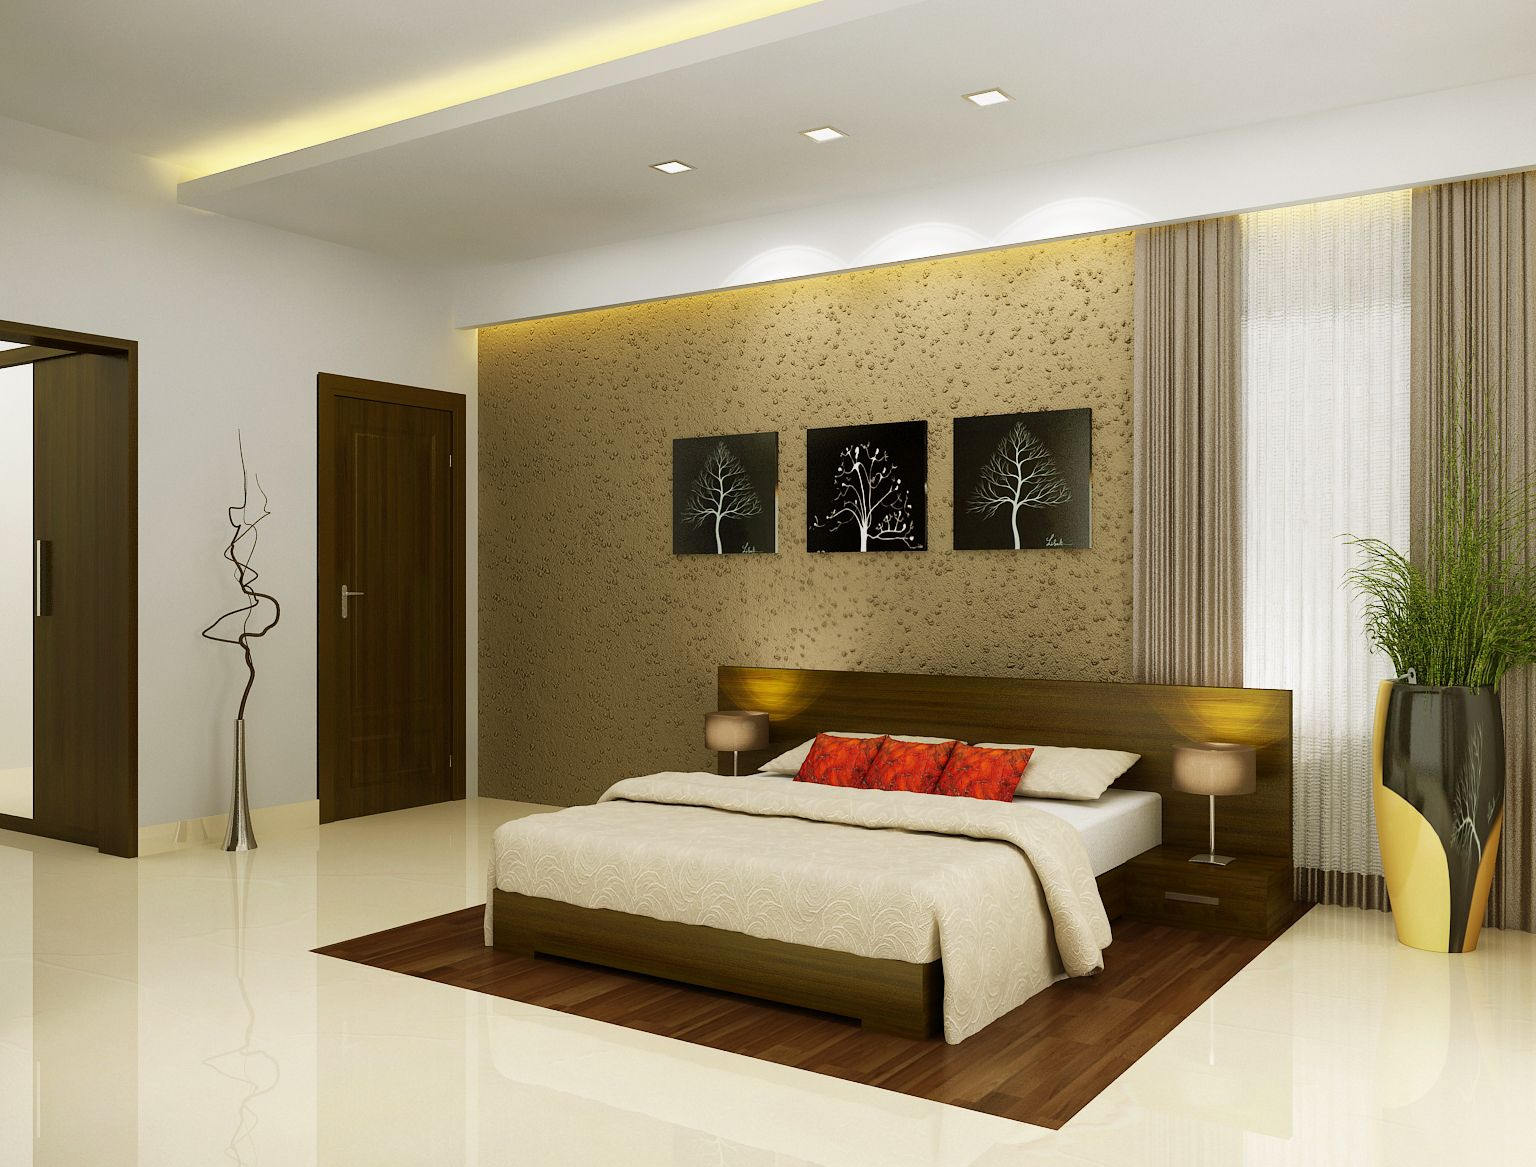 Bedroom design kerala style design ideas 2017 2018 for Bedroom ideas 2018